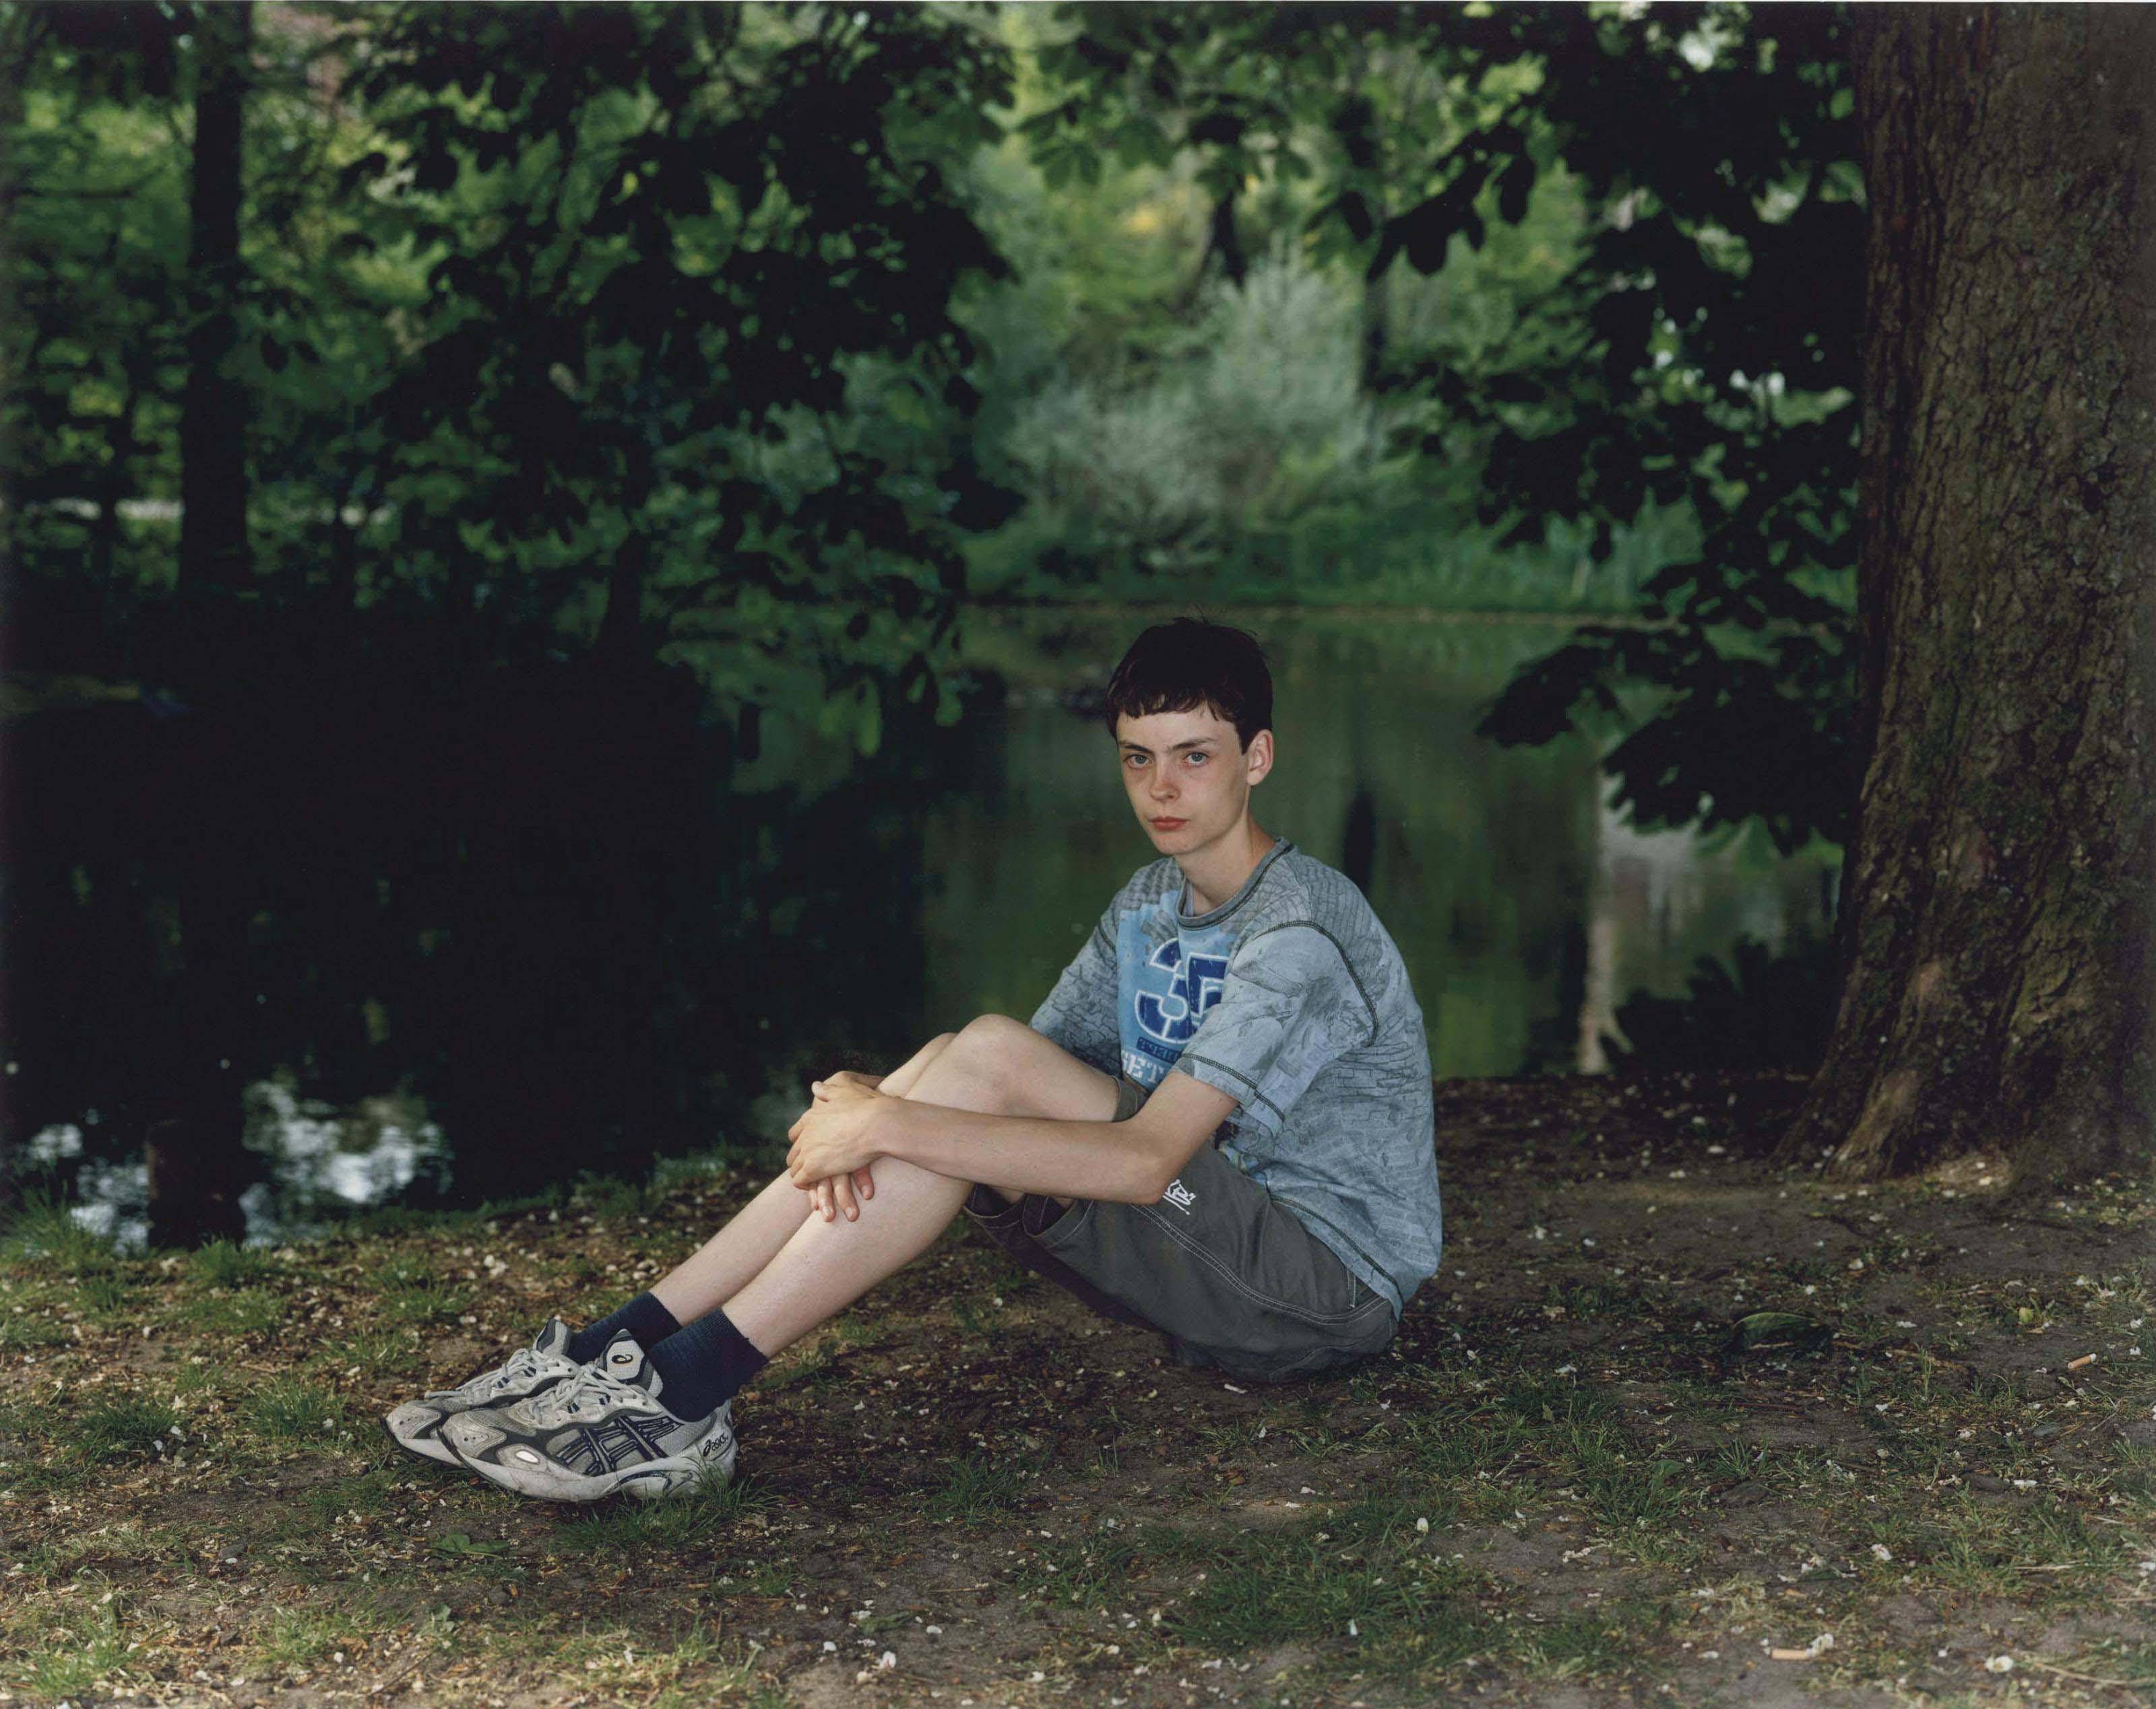 Teenage boy in Vondelpark, Amsterdam, The Netherlands, May 12, 2006